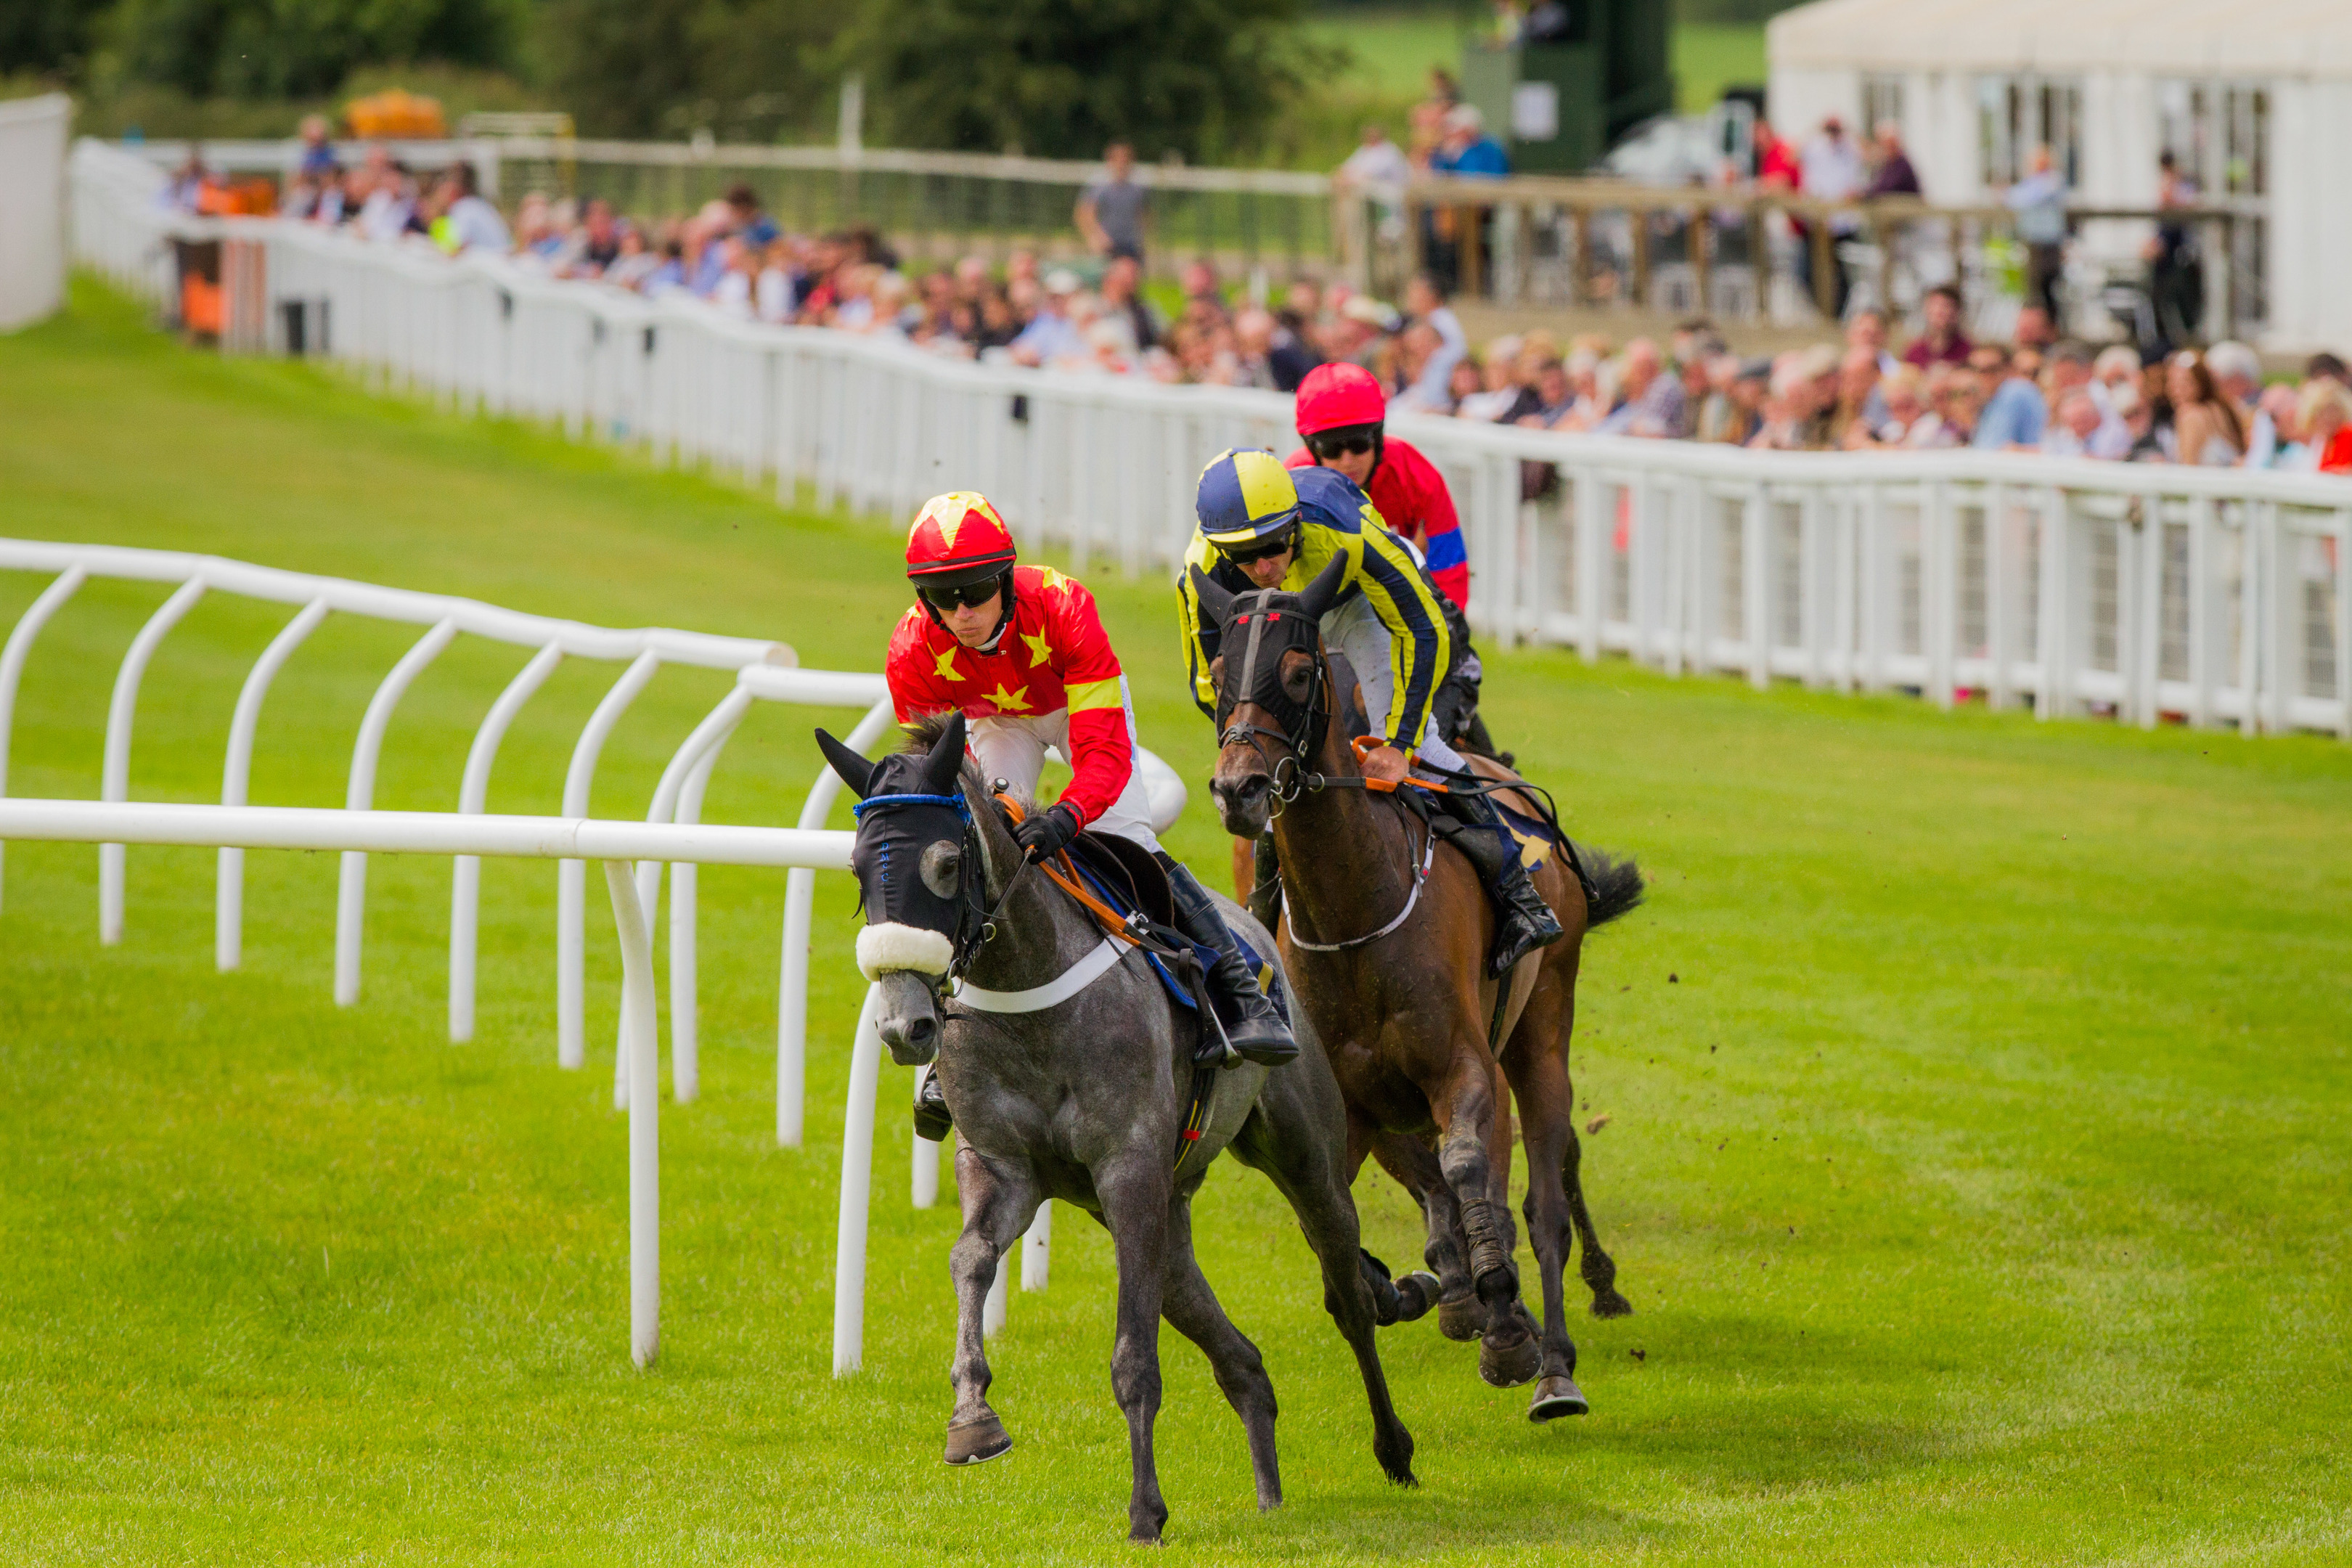 Race meeting at Perth Racecourse.